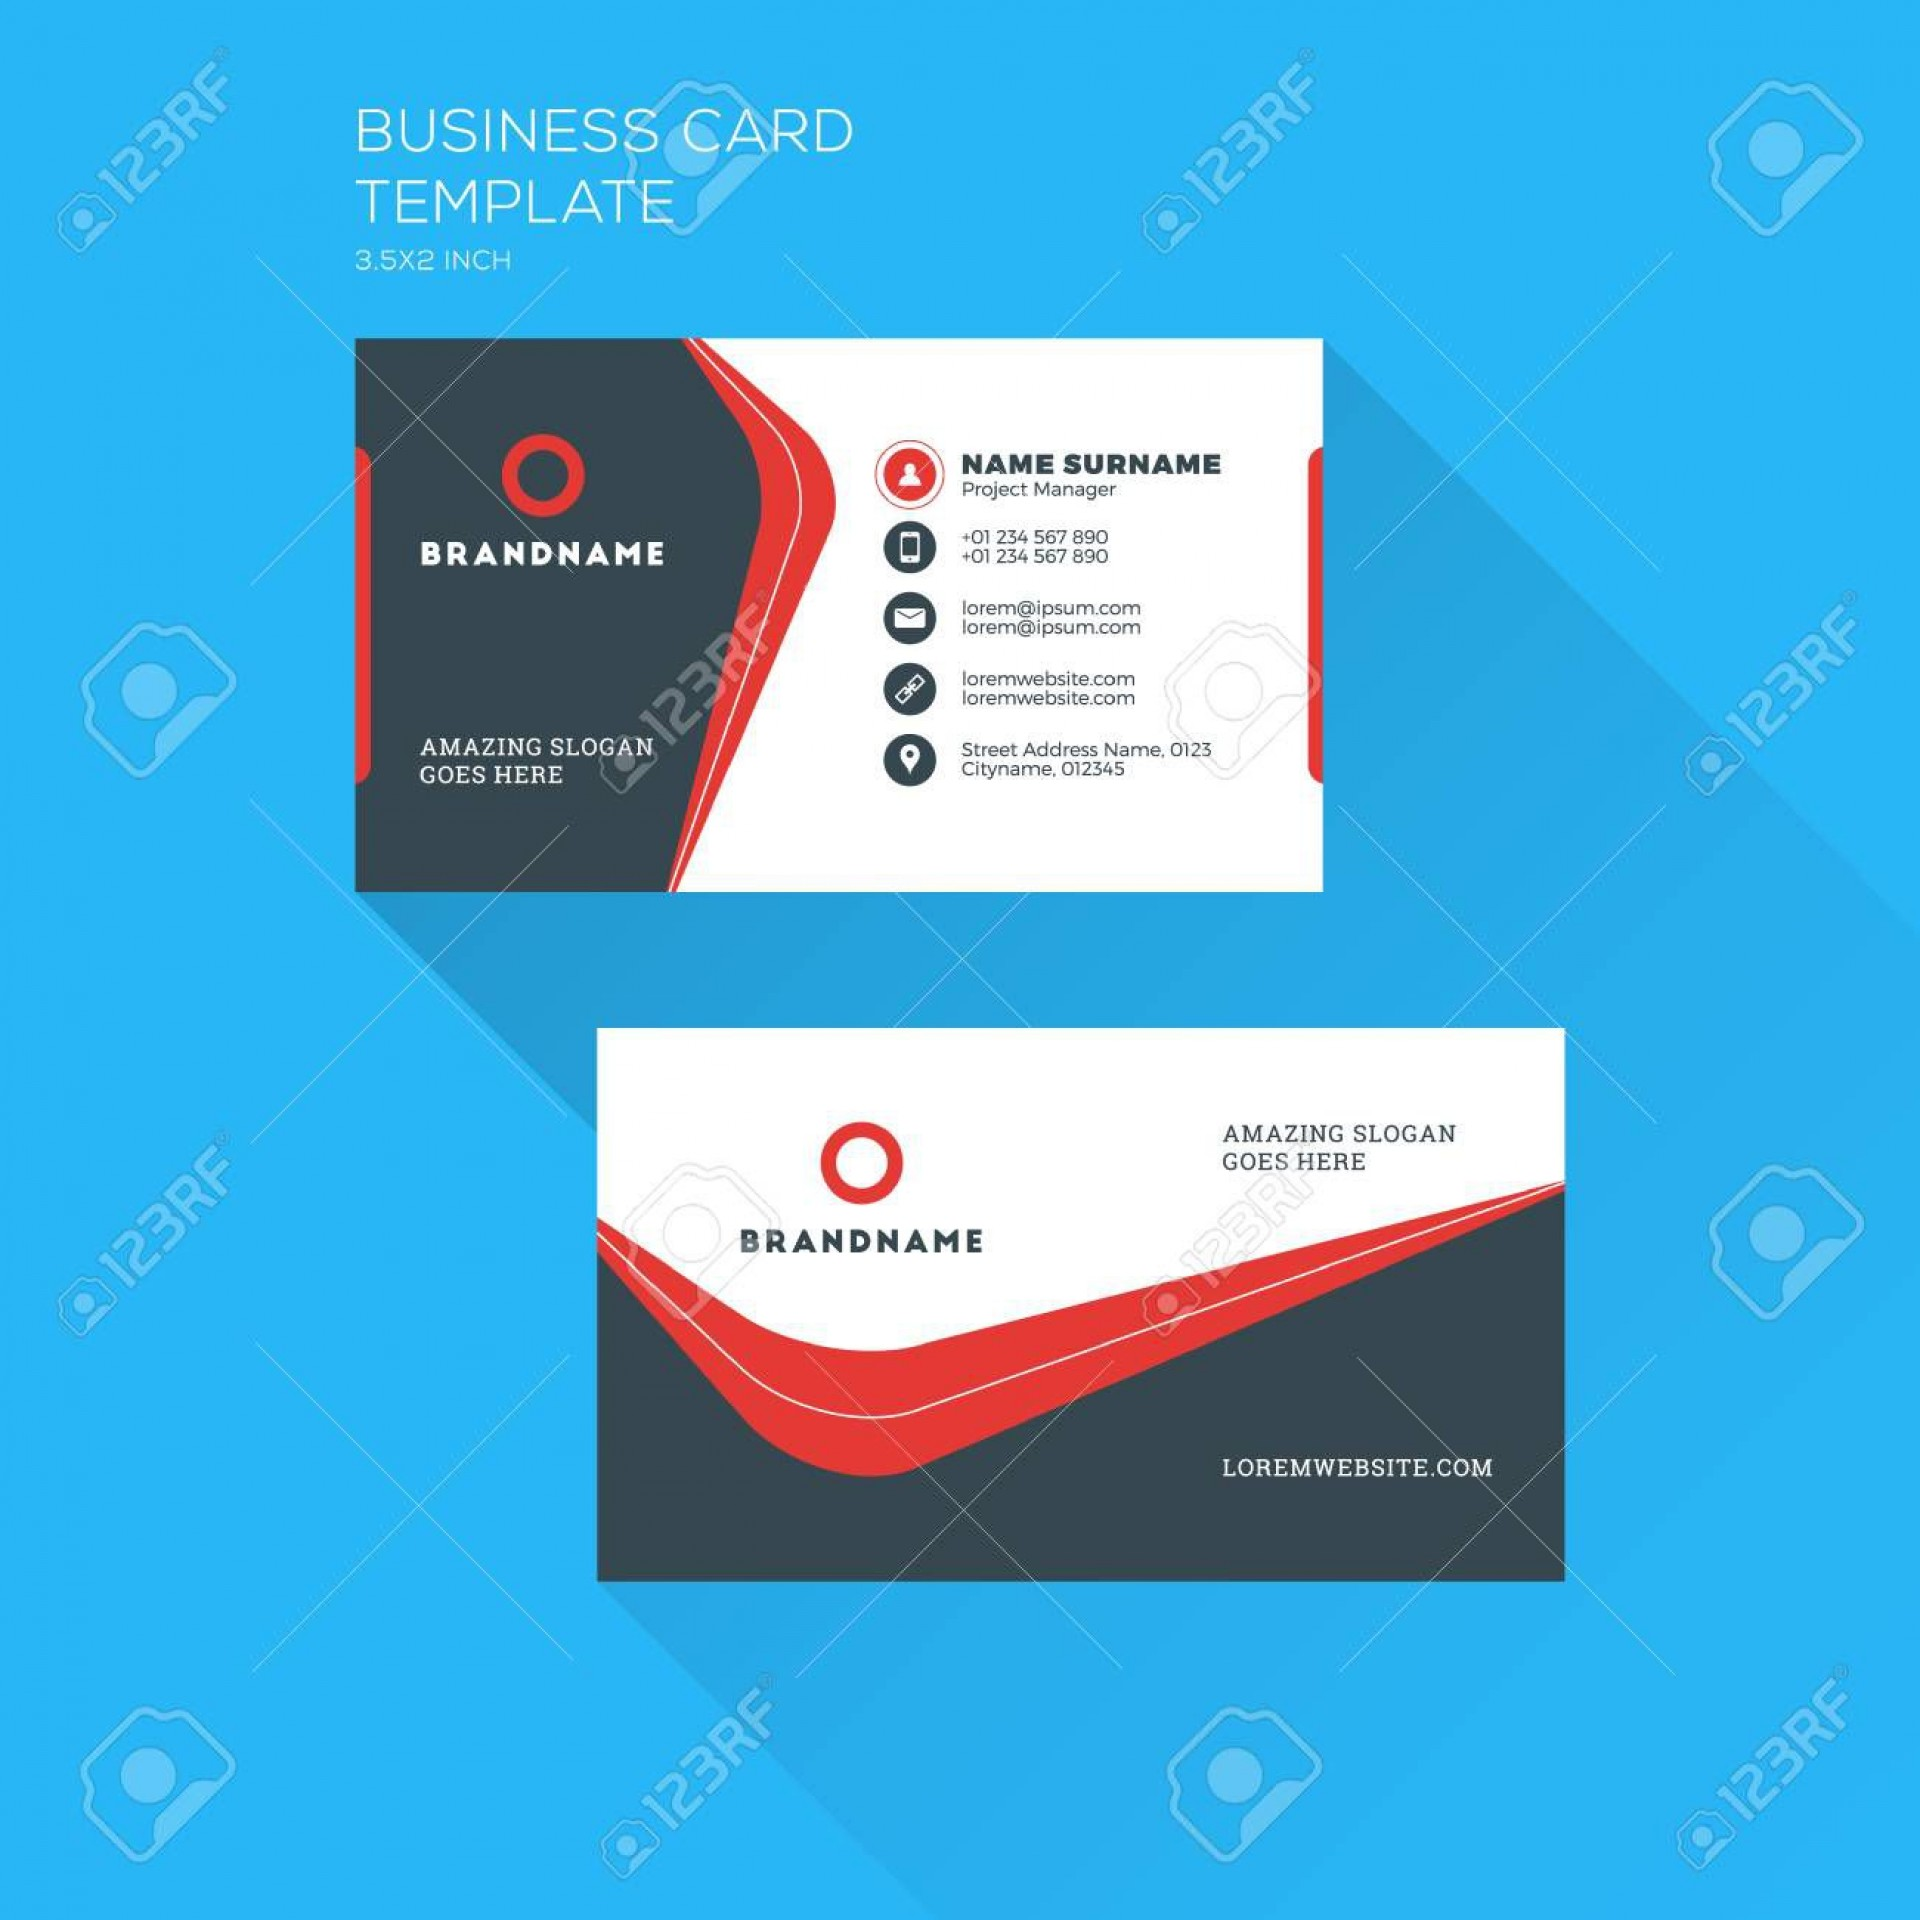 001 Exceptional Personal Busines Card Template Picture  Trainer Design Psd Fitnes1920